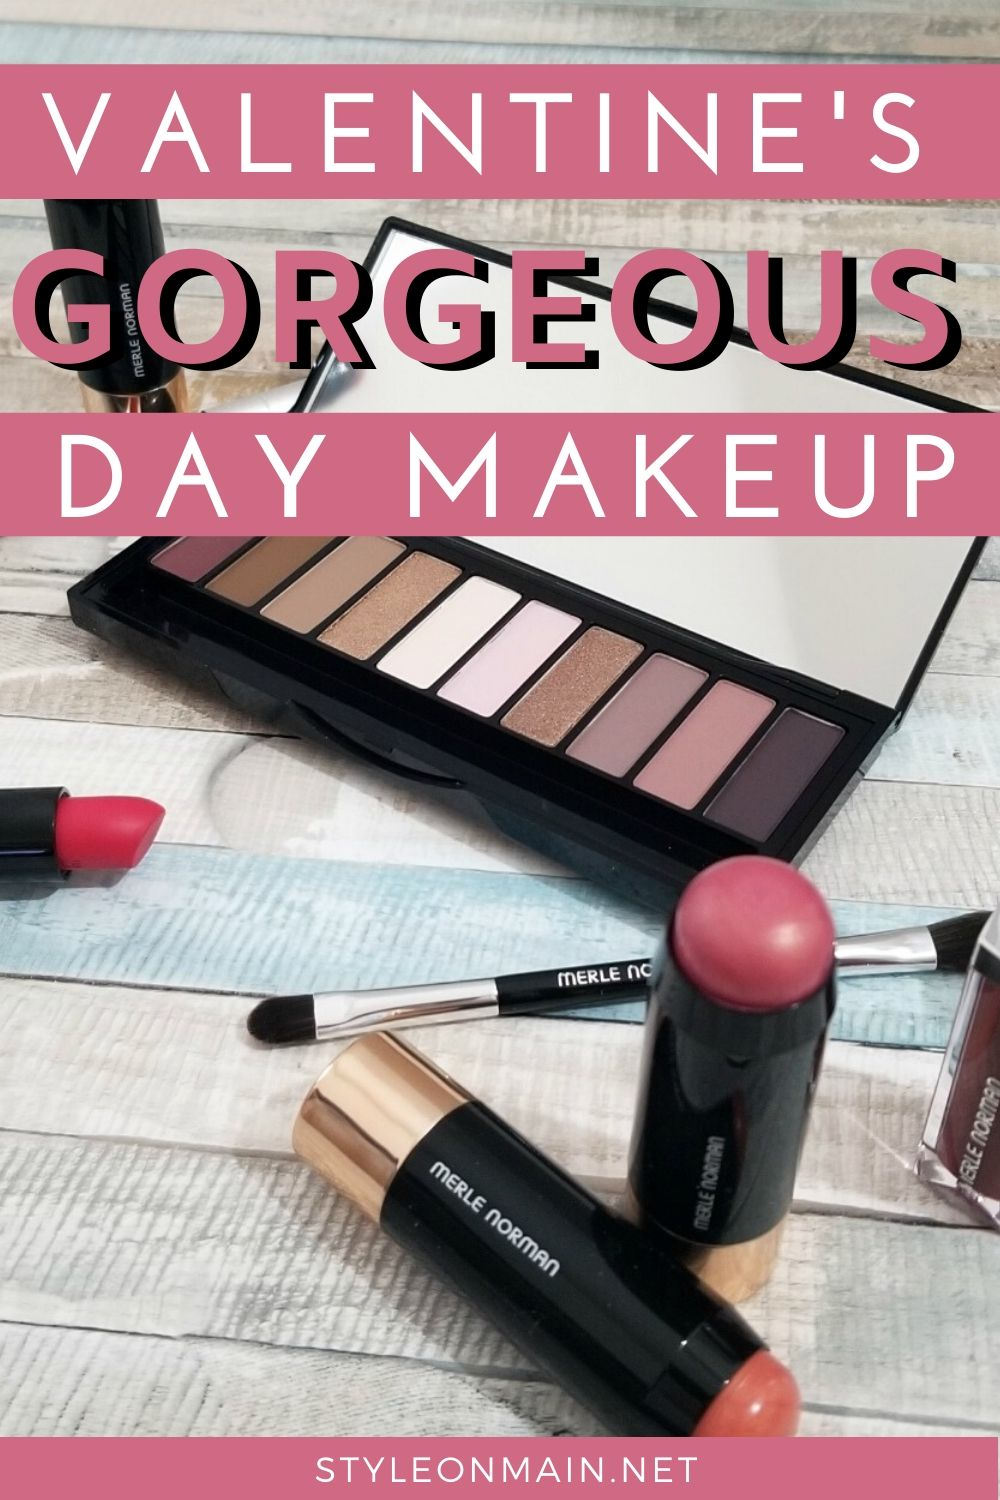 Fabulous Valentine's Day Makeup choices from merle Norman. These beauty items are also totally wearable for the rest of the year, too.